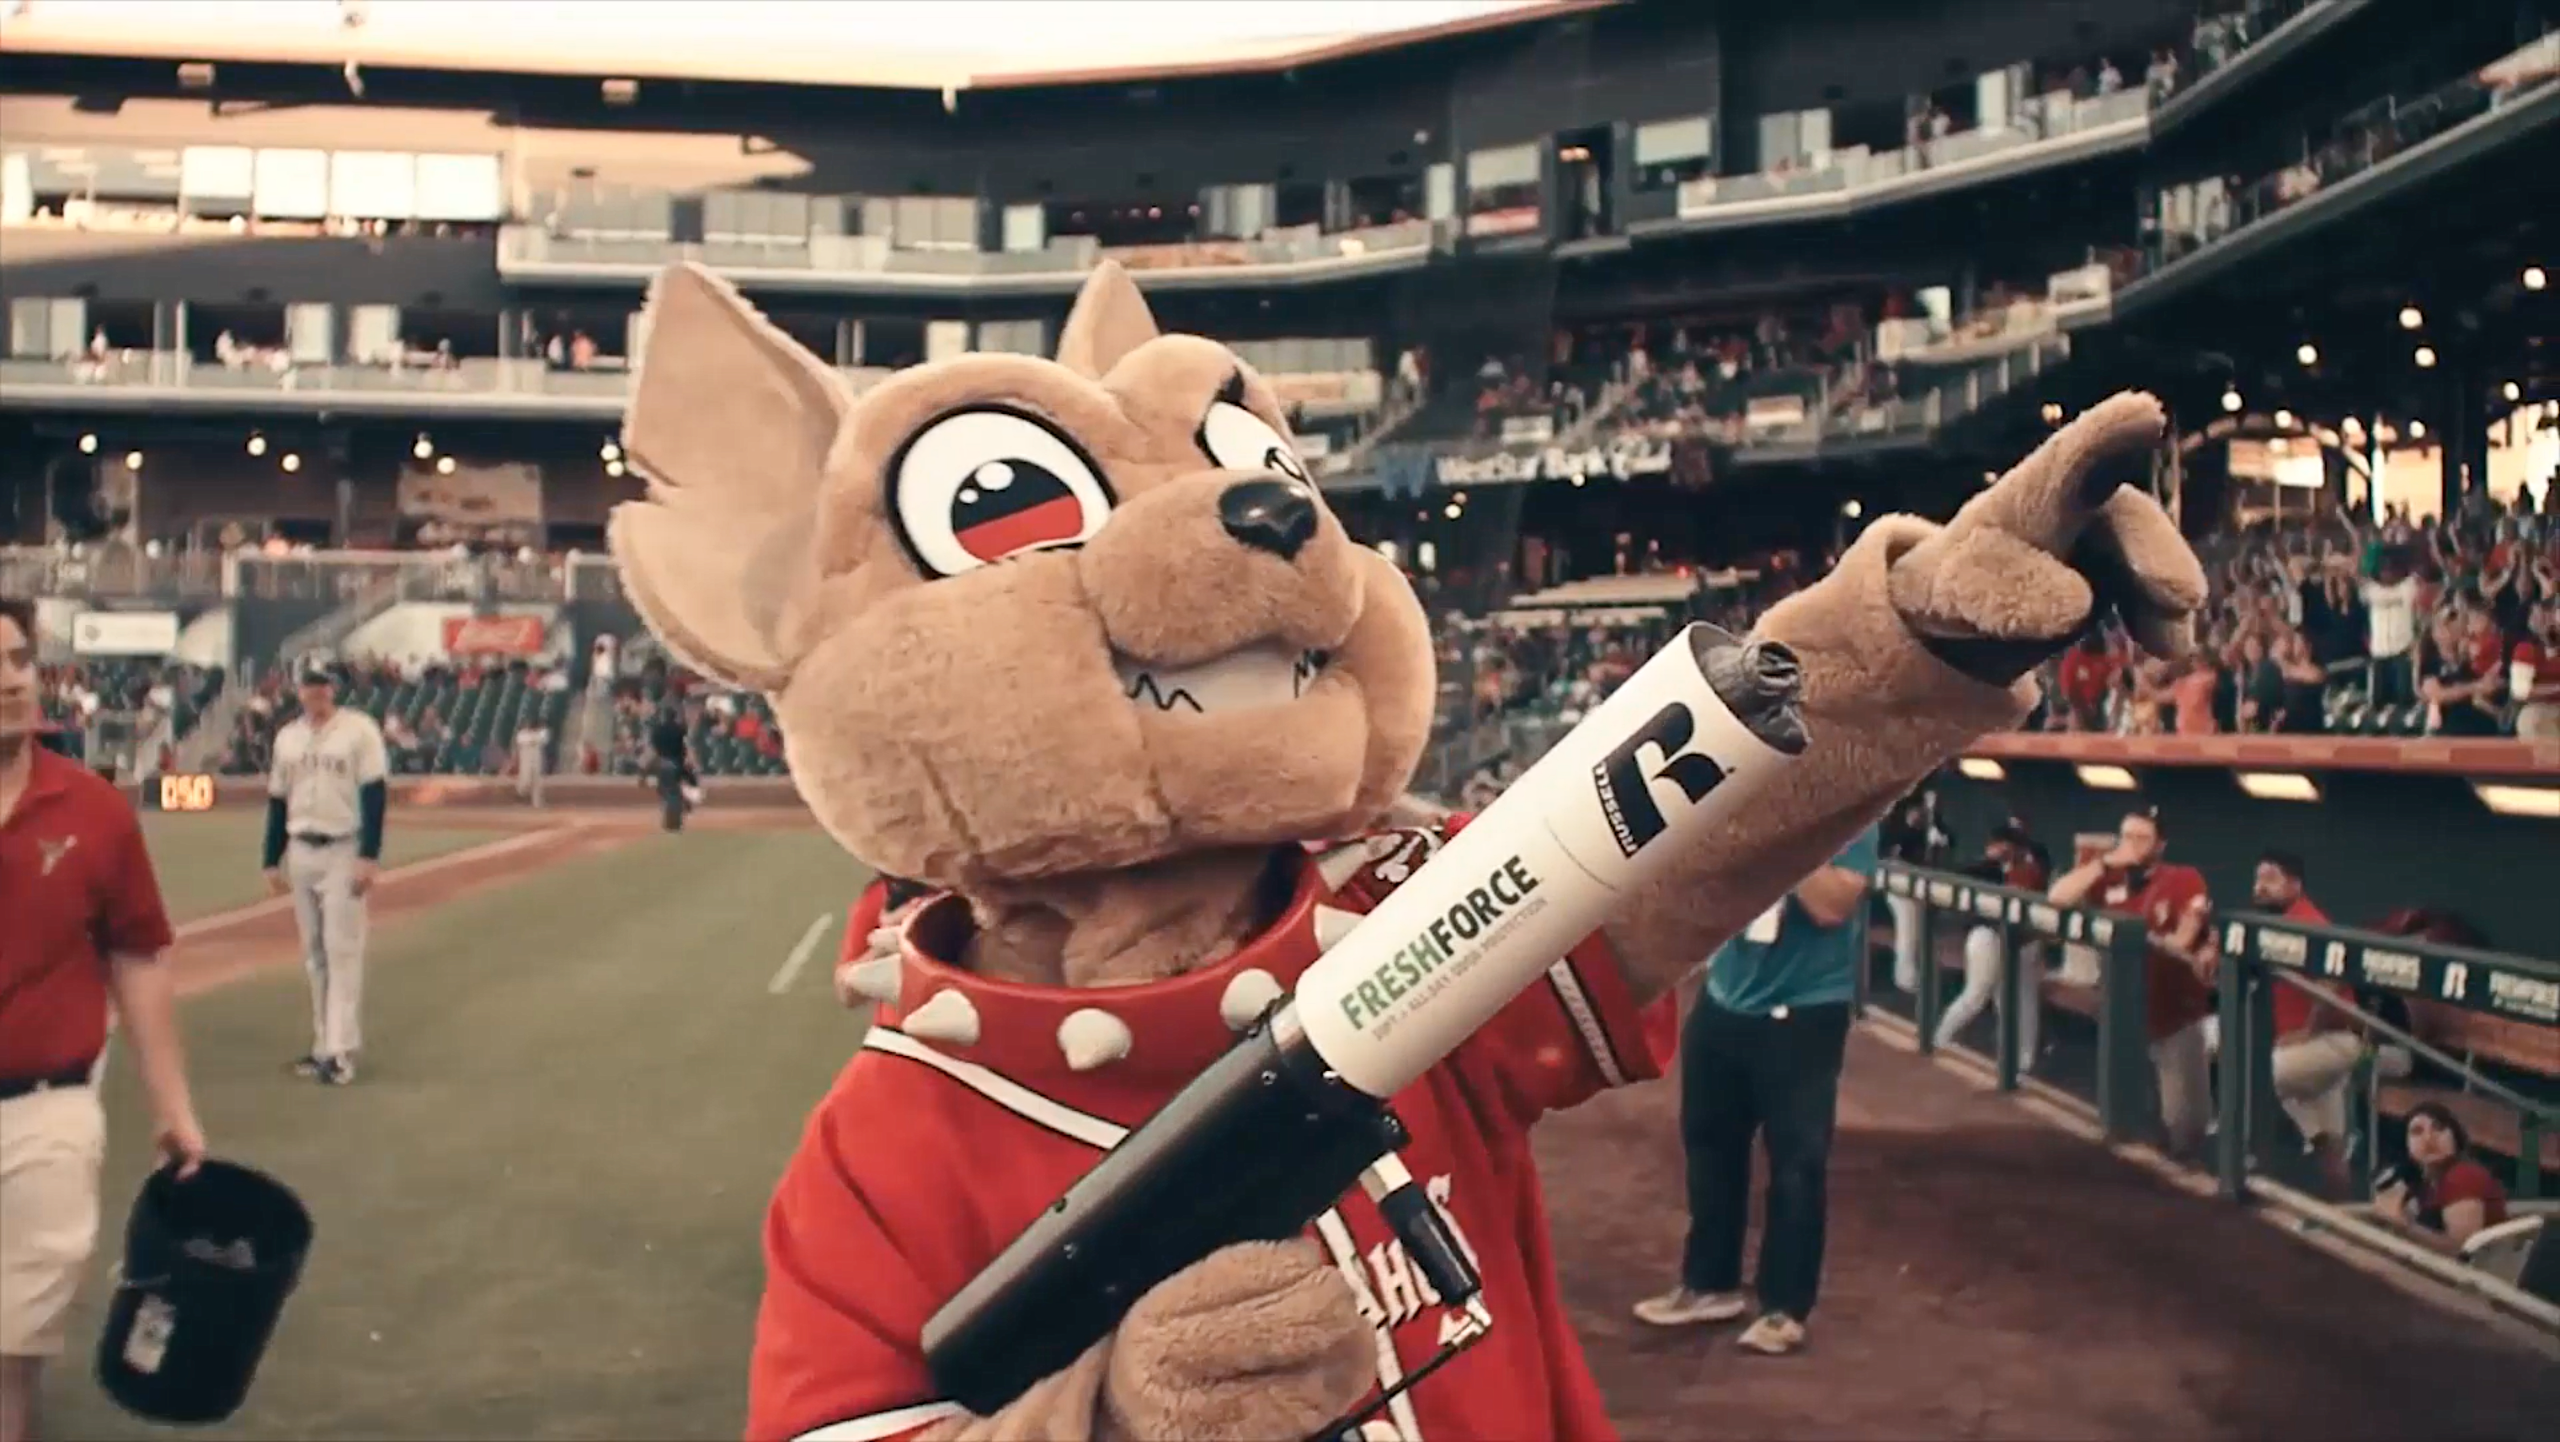 MINOR LEAGUE MASCOTS, MAJOR LEAGUE FUNK | CHICO Thumbnail